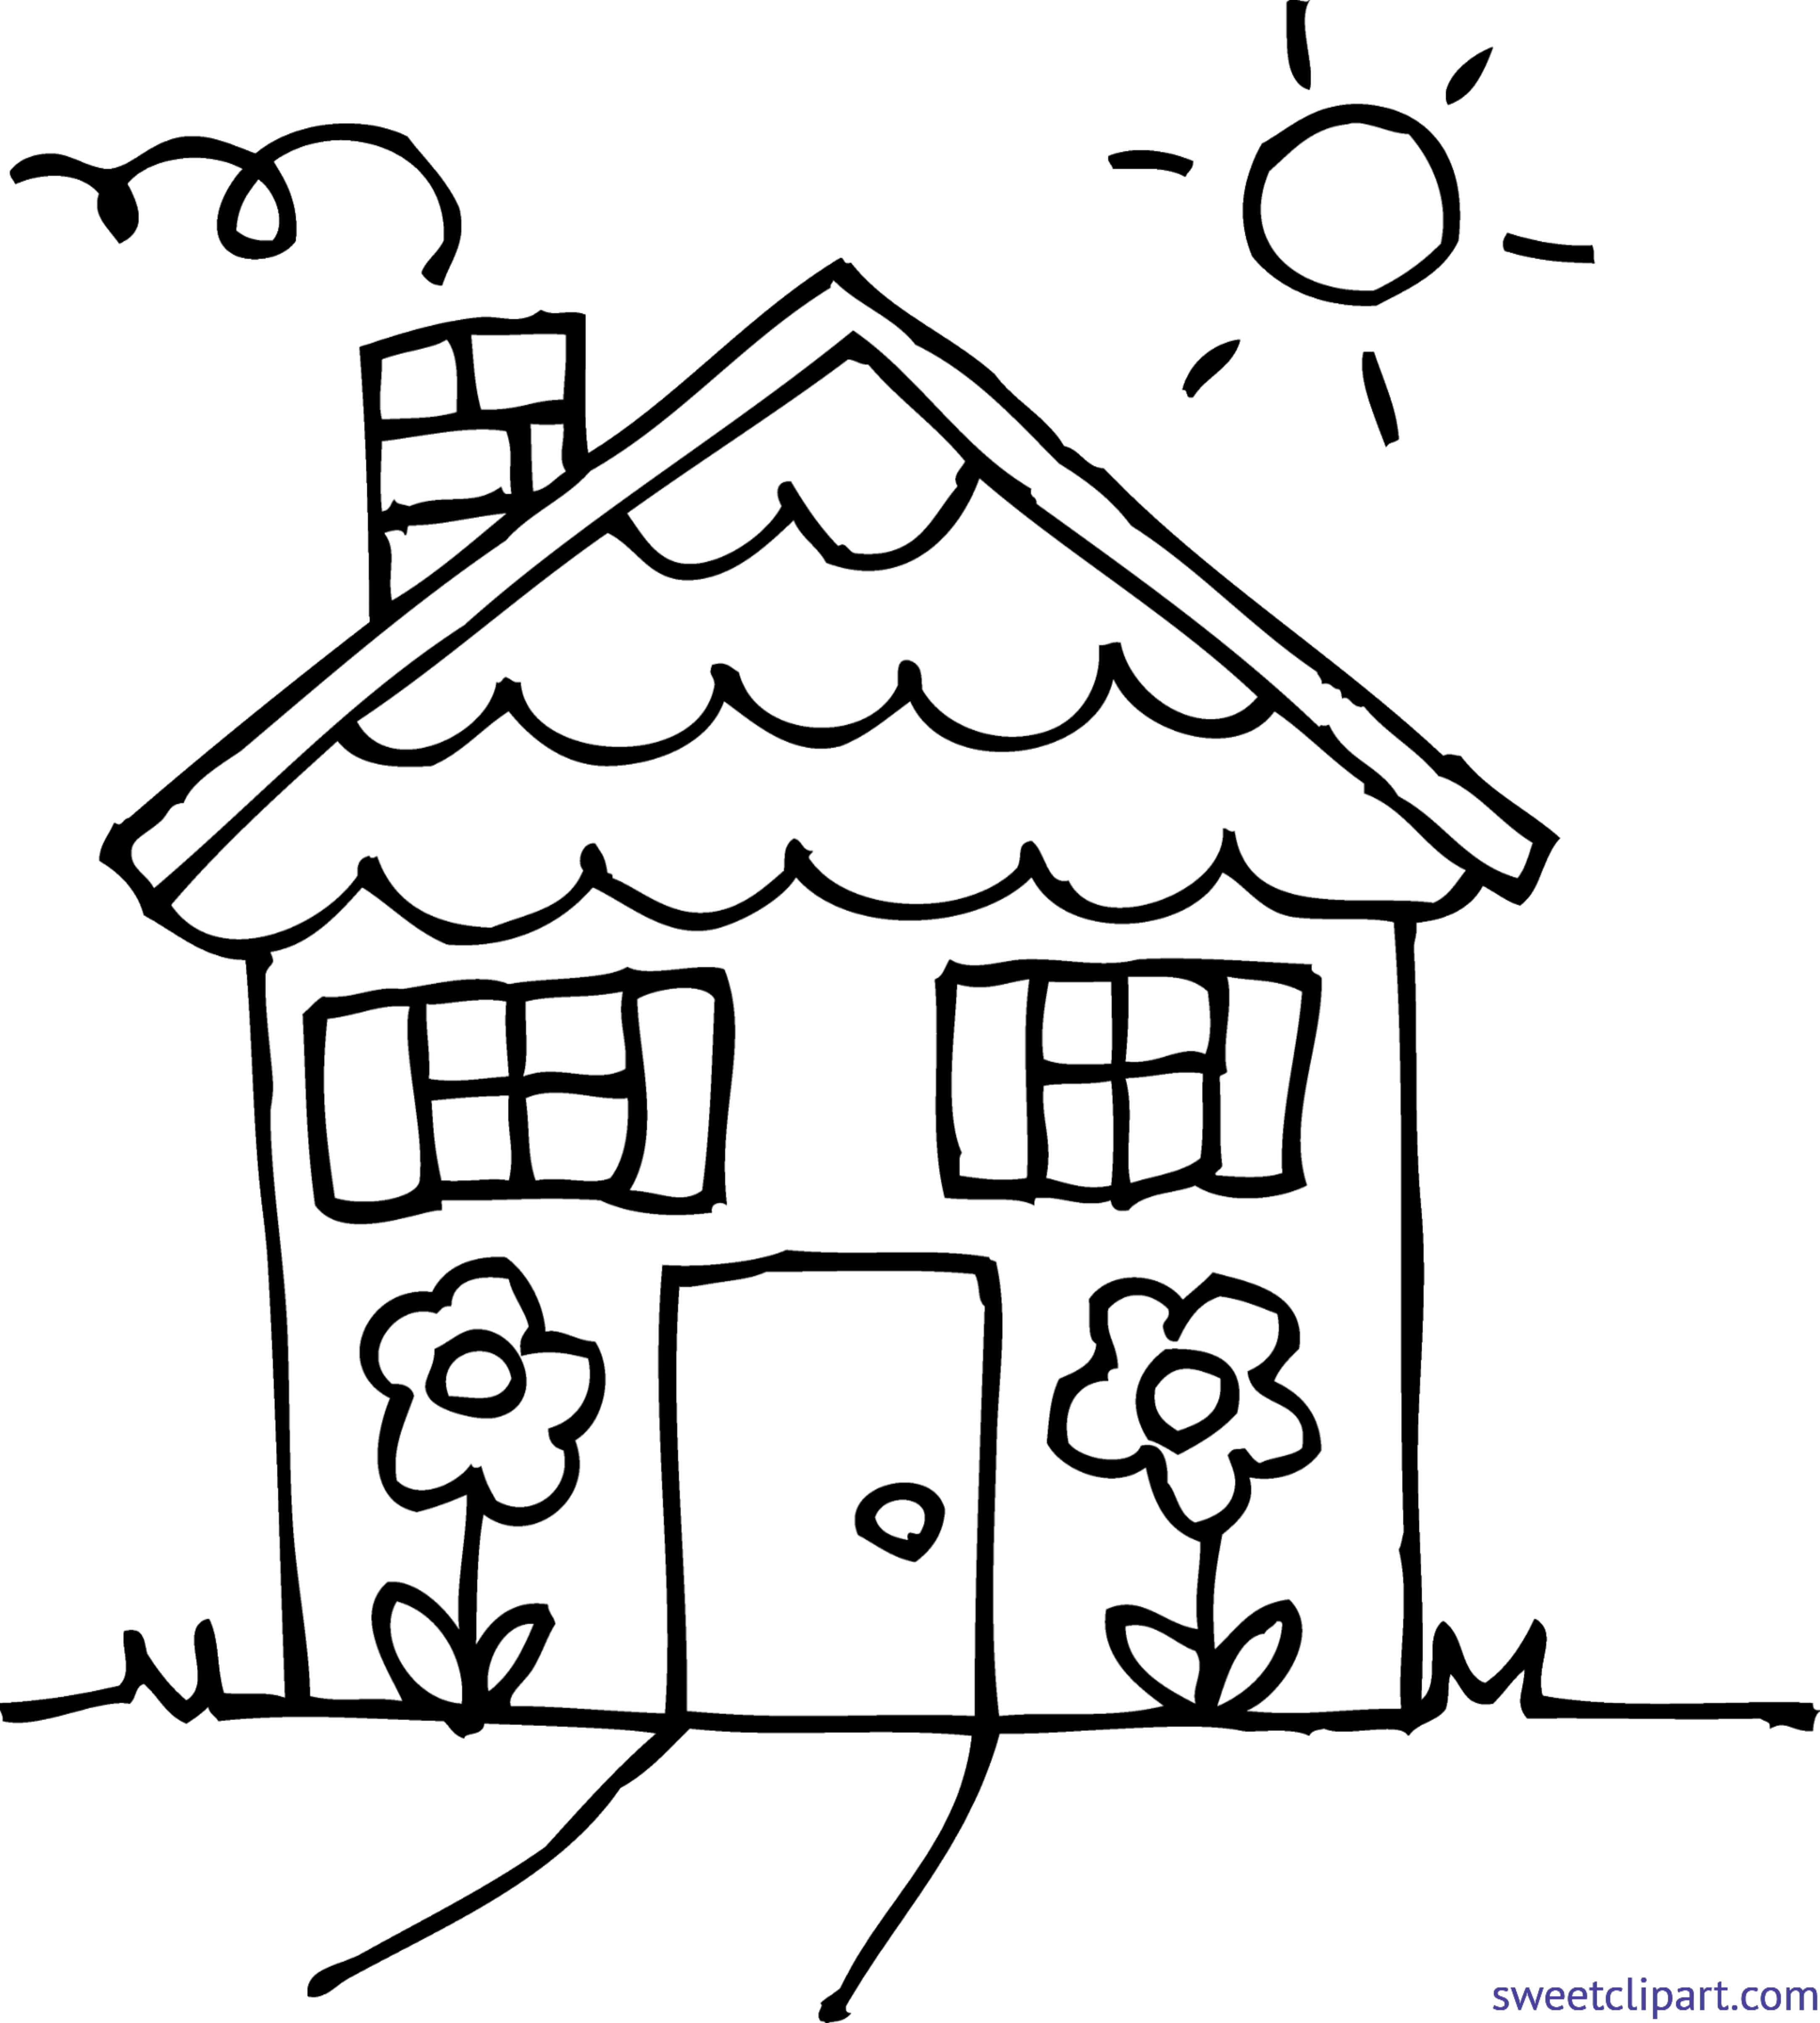 4332x4815 Cute House 3 Coloring Page Cli-4332x4815 Cute House 3 Coloring Page Clip Art-14